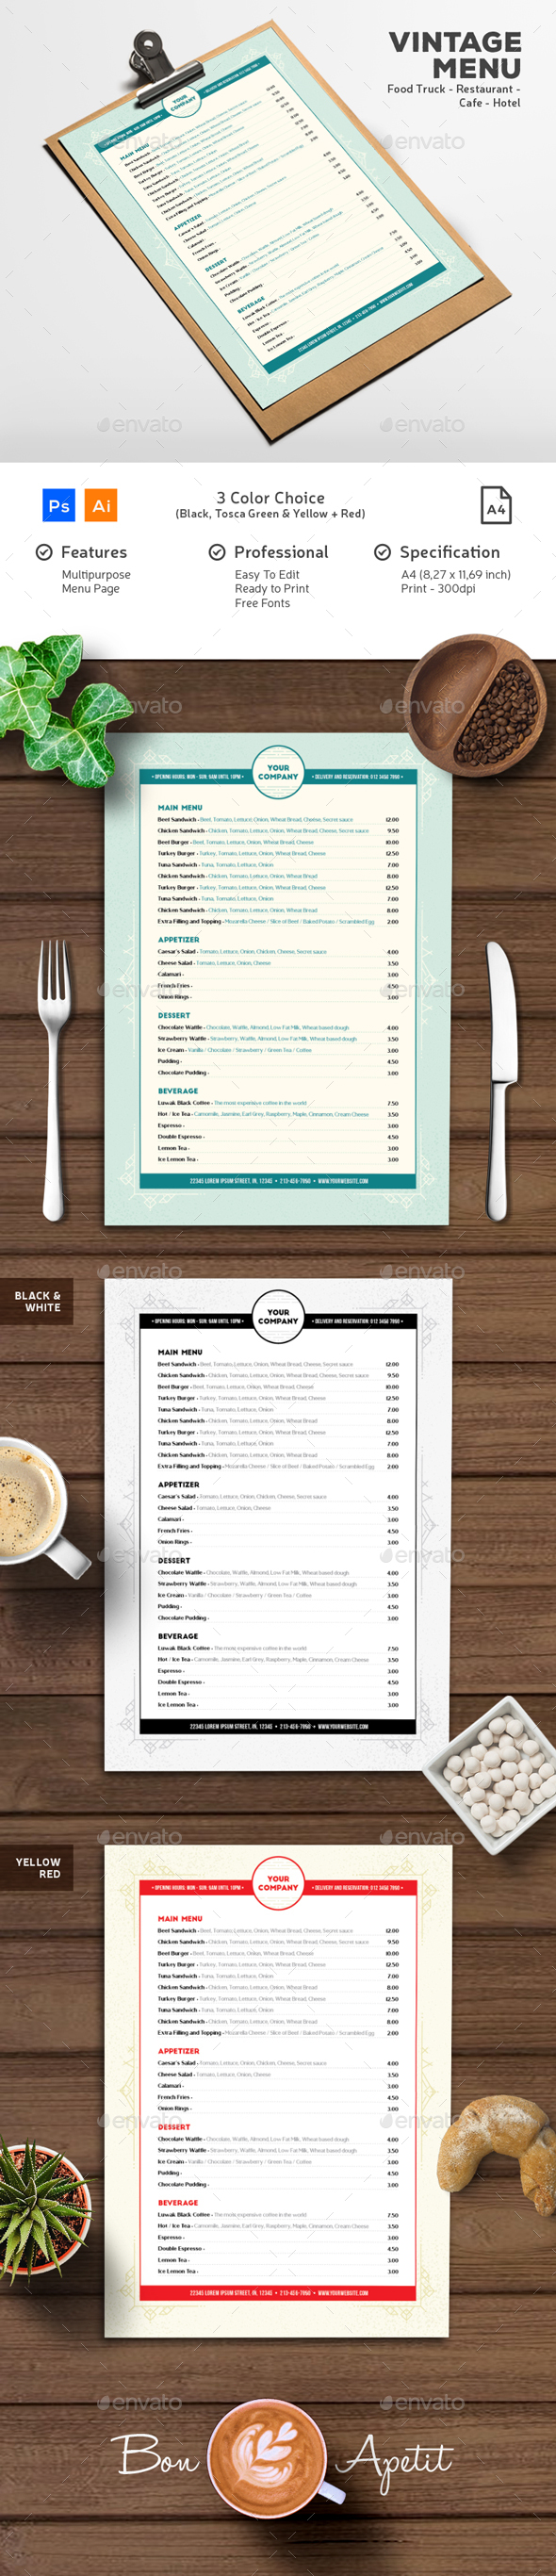 Vintage Geometric Menu - Food Menus Print Templates